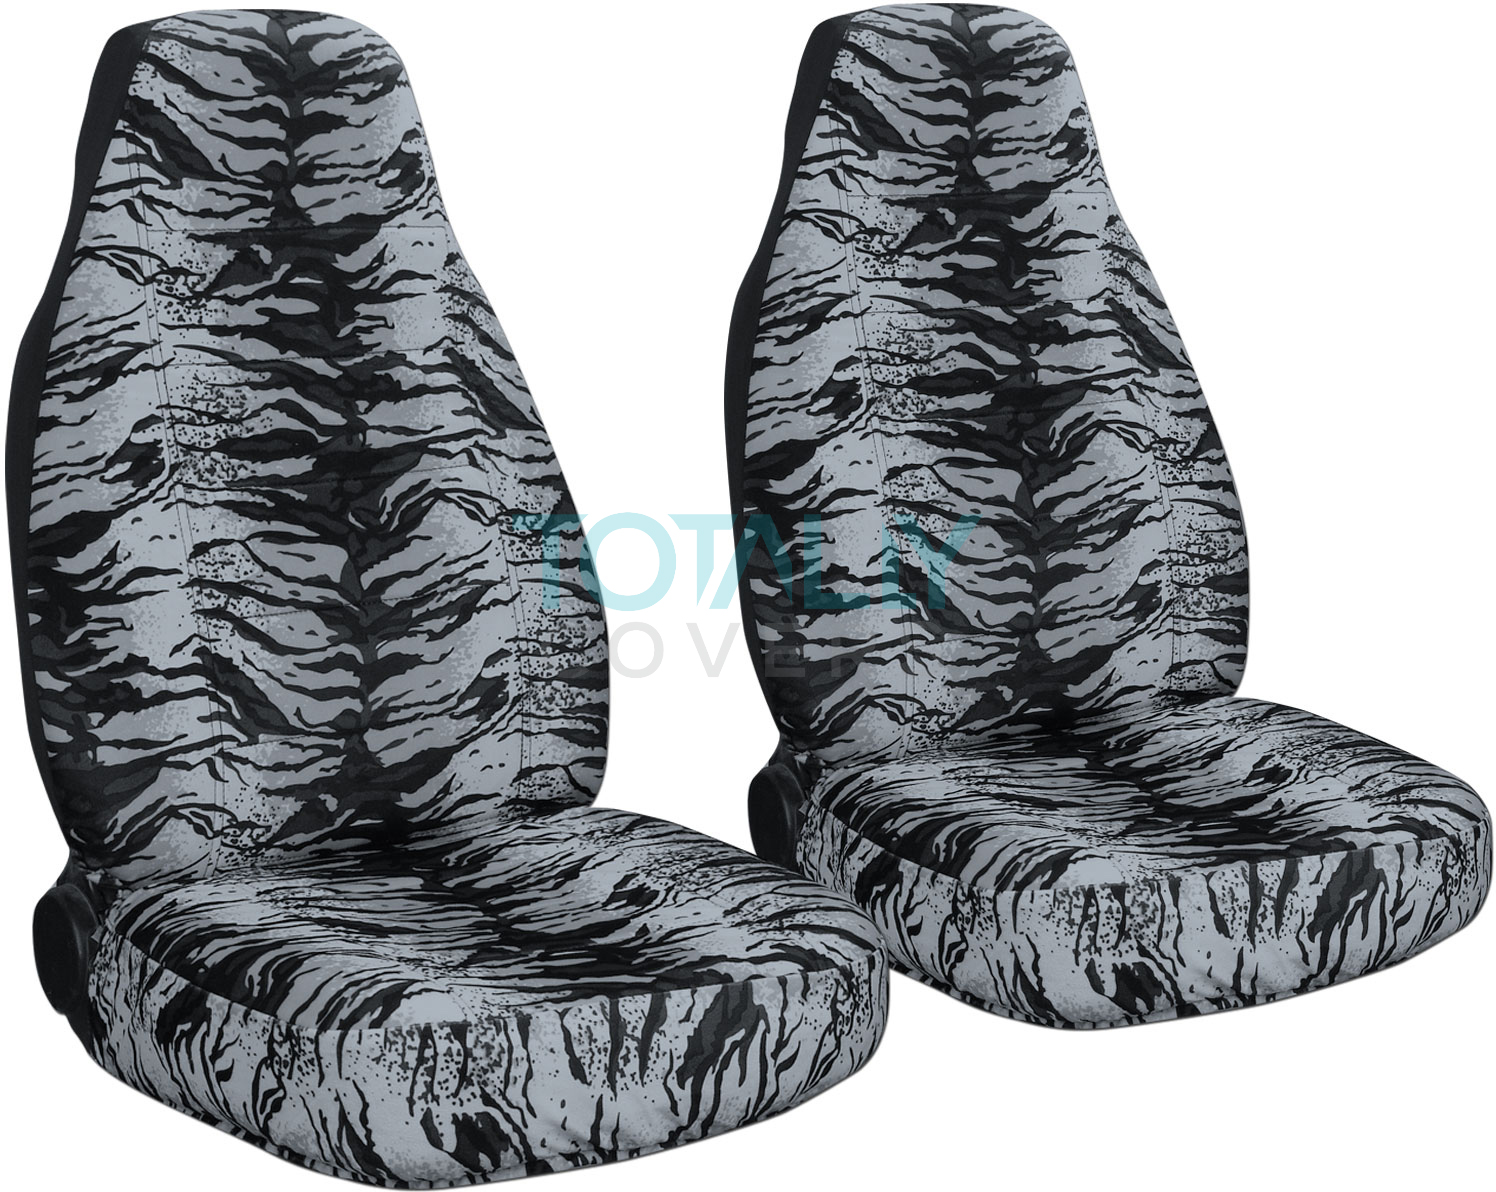 Silver Snow Tiger Car Seat Covers